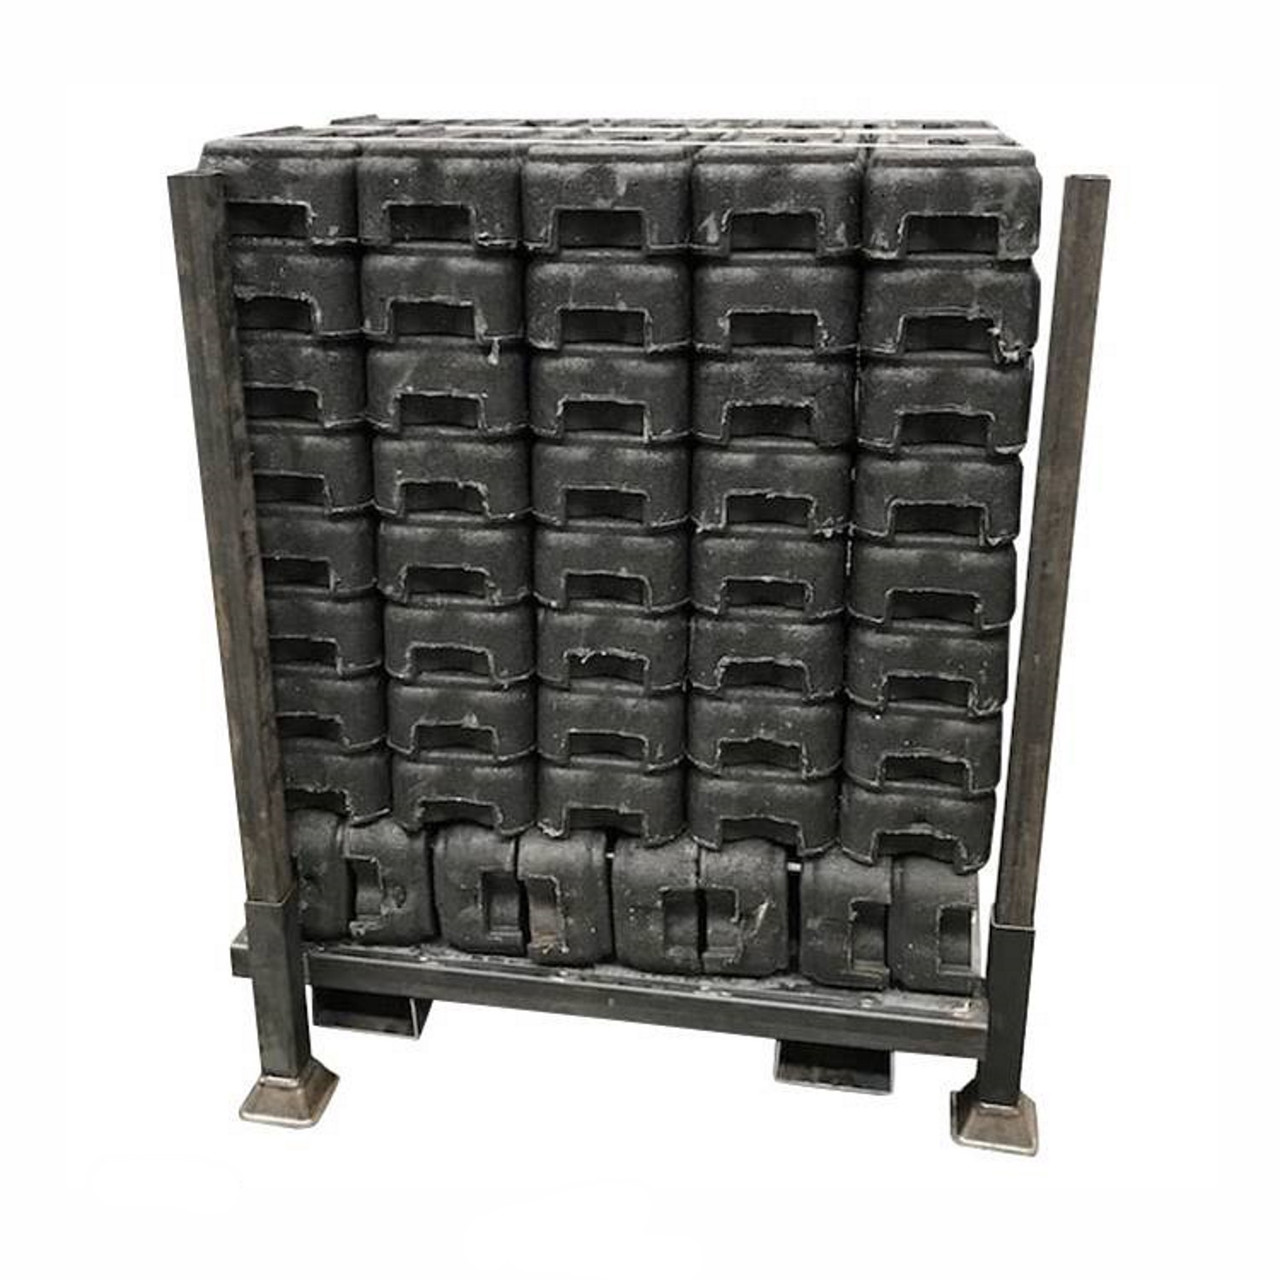 Metal stillage to store up to 48 rubber block fence feet